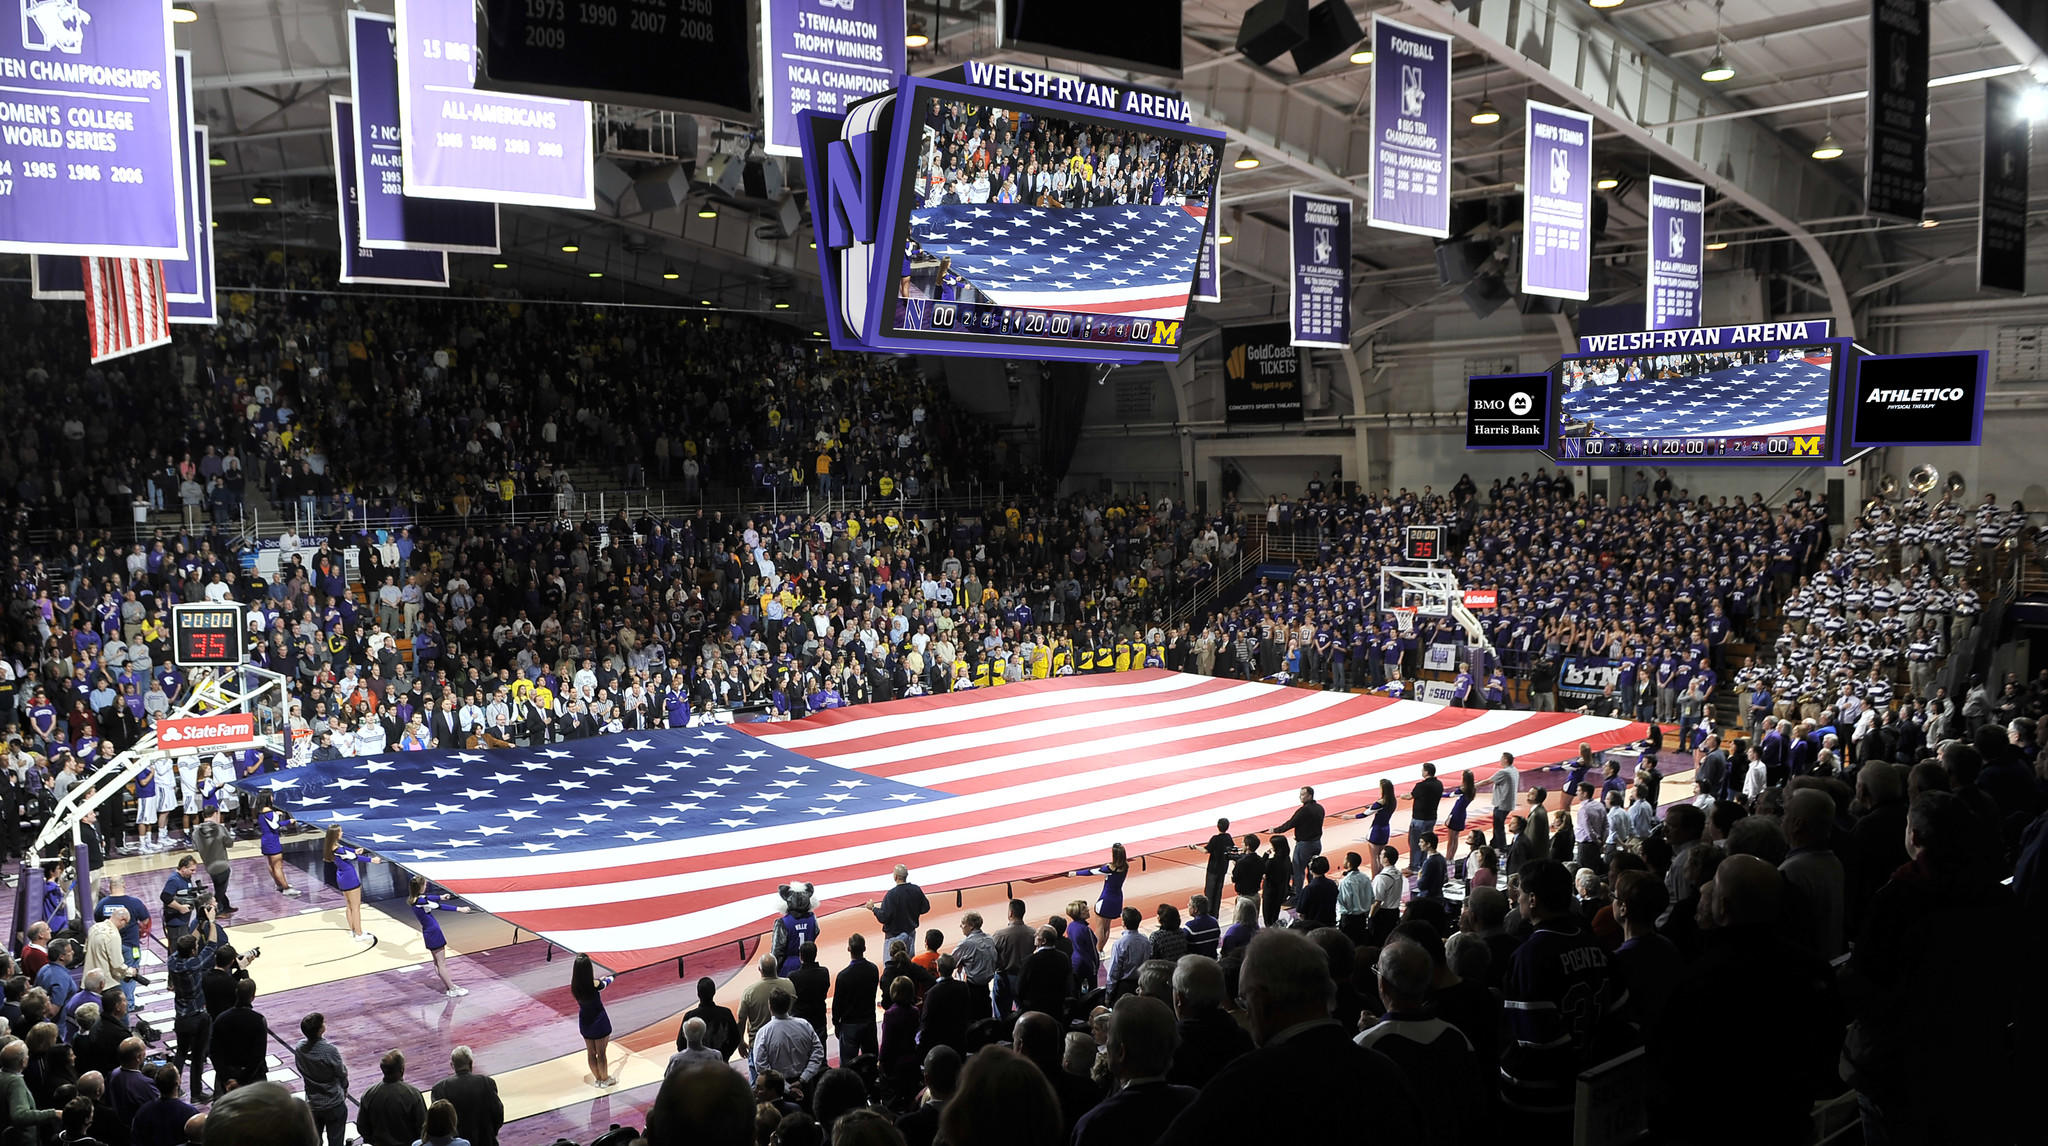 This digitally-manipulated image provided by Northwestern University was created to show how Welsh-Ryan Area may look with with the addition of four high-definition video boards in the 62-year-old arena. (Northwestern University illustration)